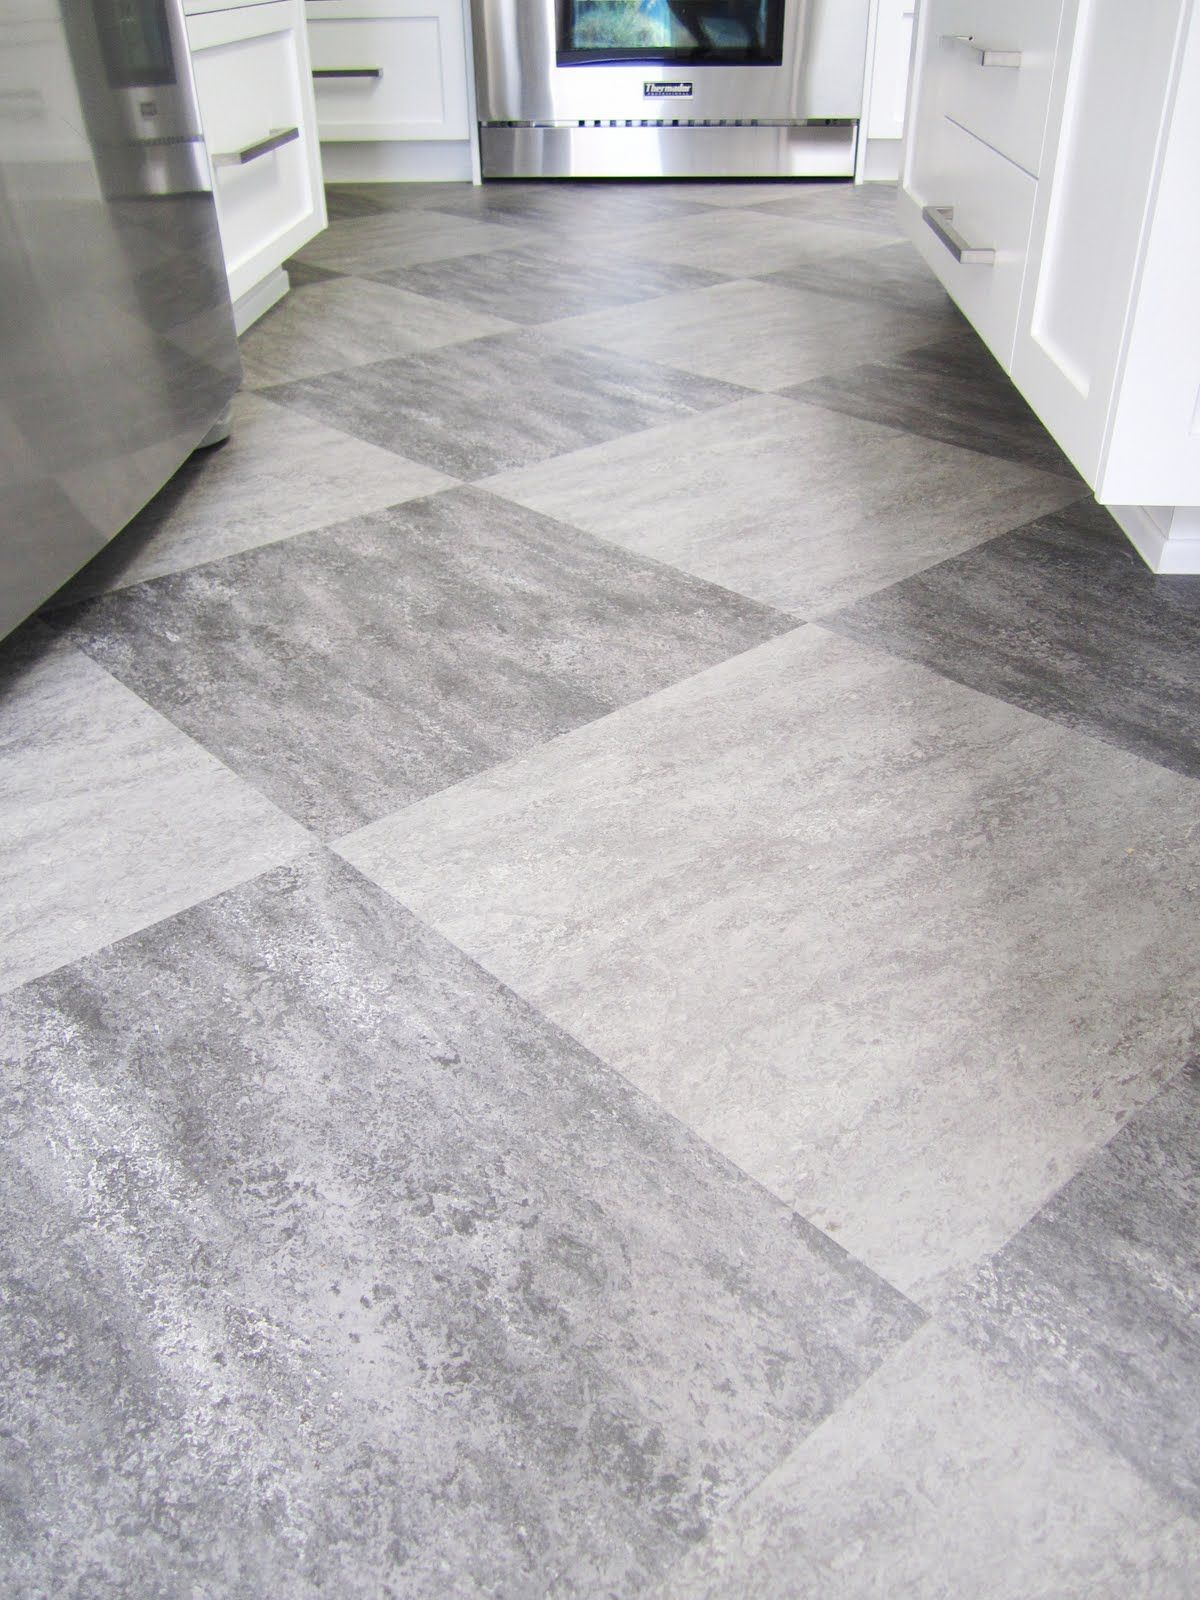 Lino For Kitchen Floors Harlequin Tile Floors Harlequin Of Grey On Grey Tiles Is Used